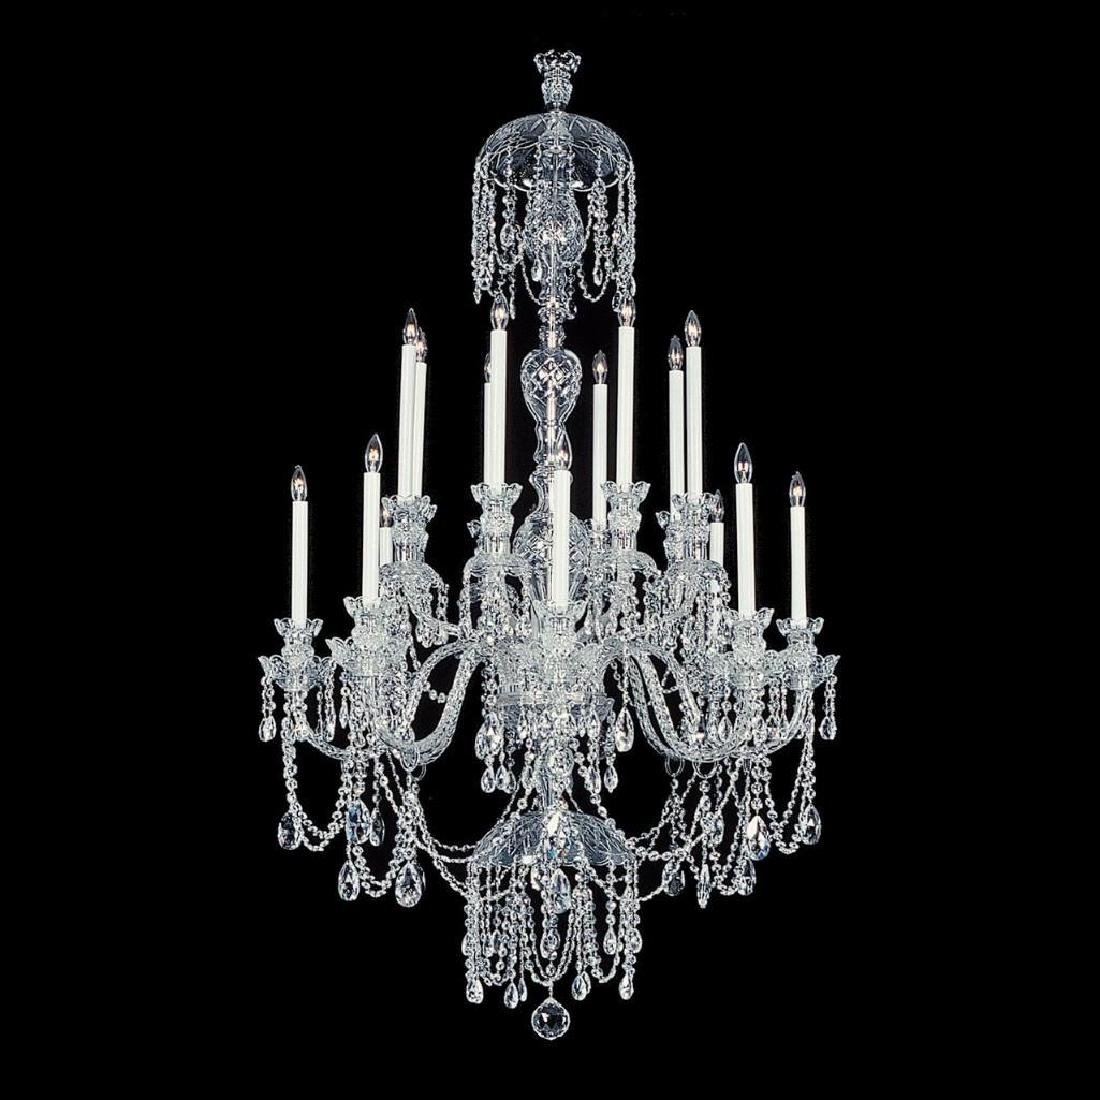 Winter Elegance - 16 Light Crystal Chandelier with